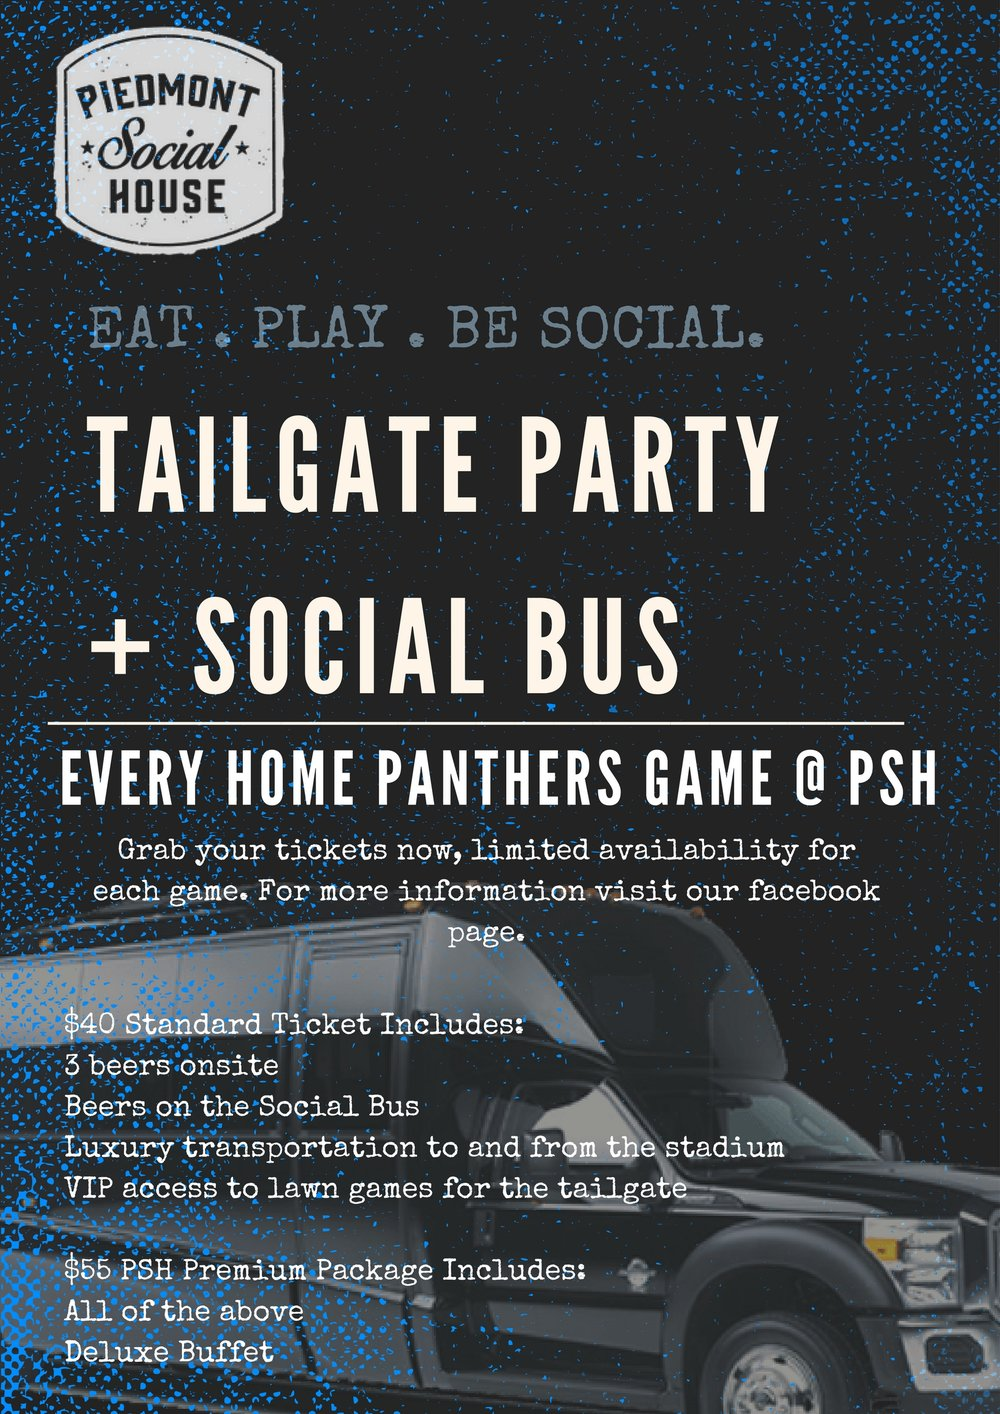 Keep Pounding!! - Roundtrip transportation in a luxury vehicleDrink specials before and after the game atPiedmont Social HouseExclusive VIP Tailgate area including lawn gamesOur tailgate begins at 11am with the bus departing for uptown at 12:20 pmThe bus will pick all patrons up in the designated area at 5pm.THIS EVENT DOES NOT INCLUDE TICKETS TO THE PANTHERS GAME